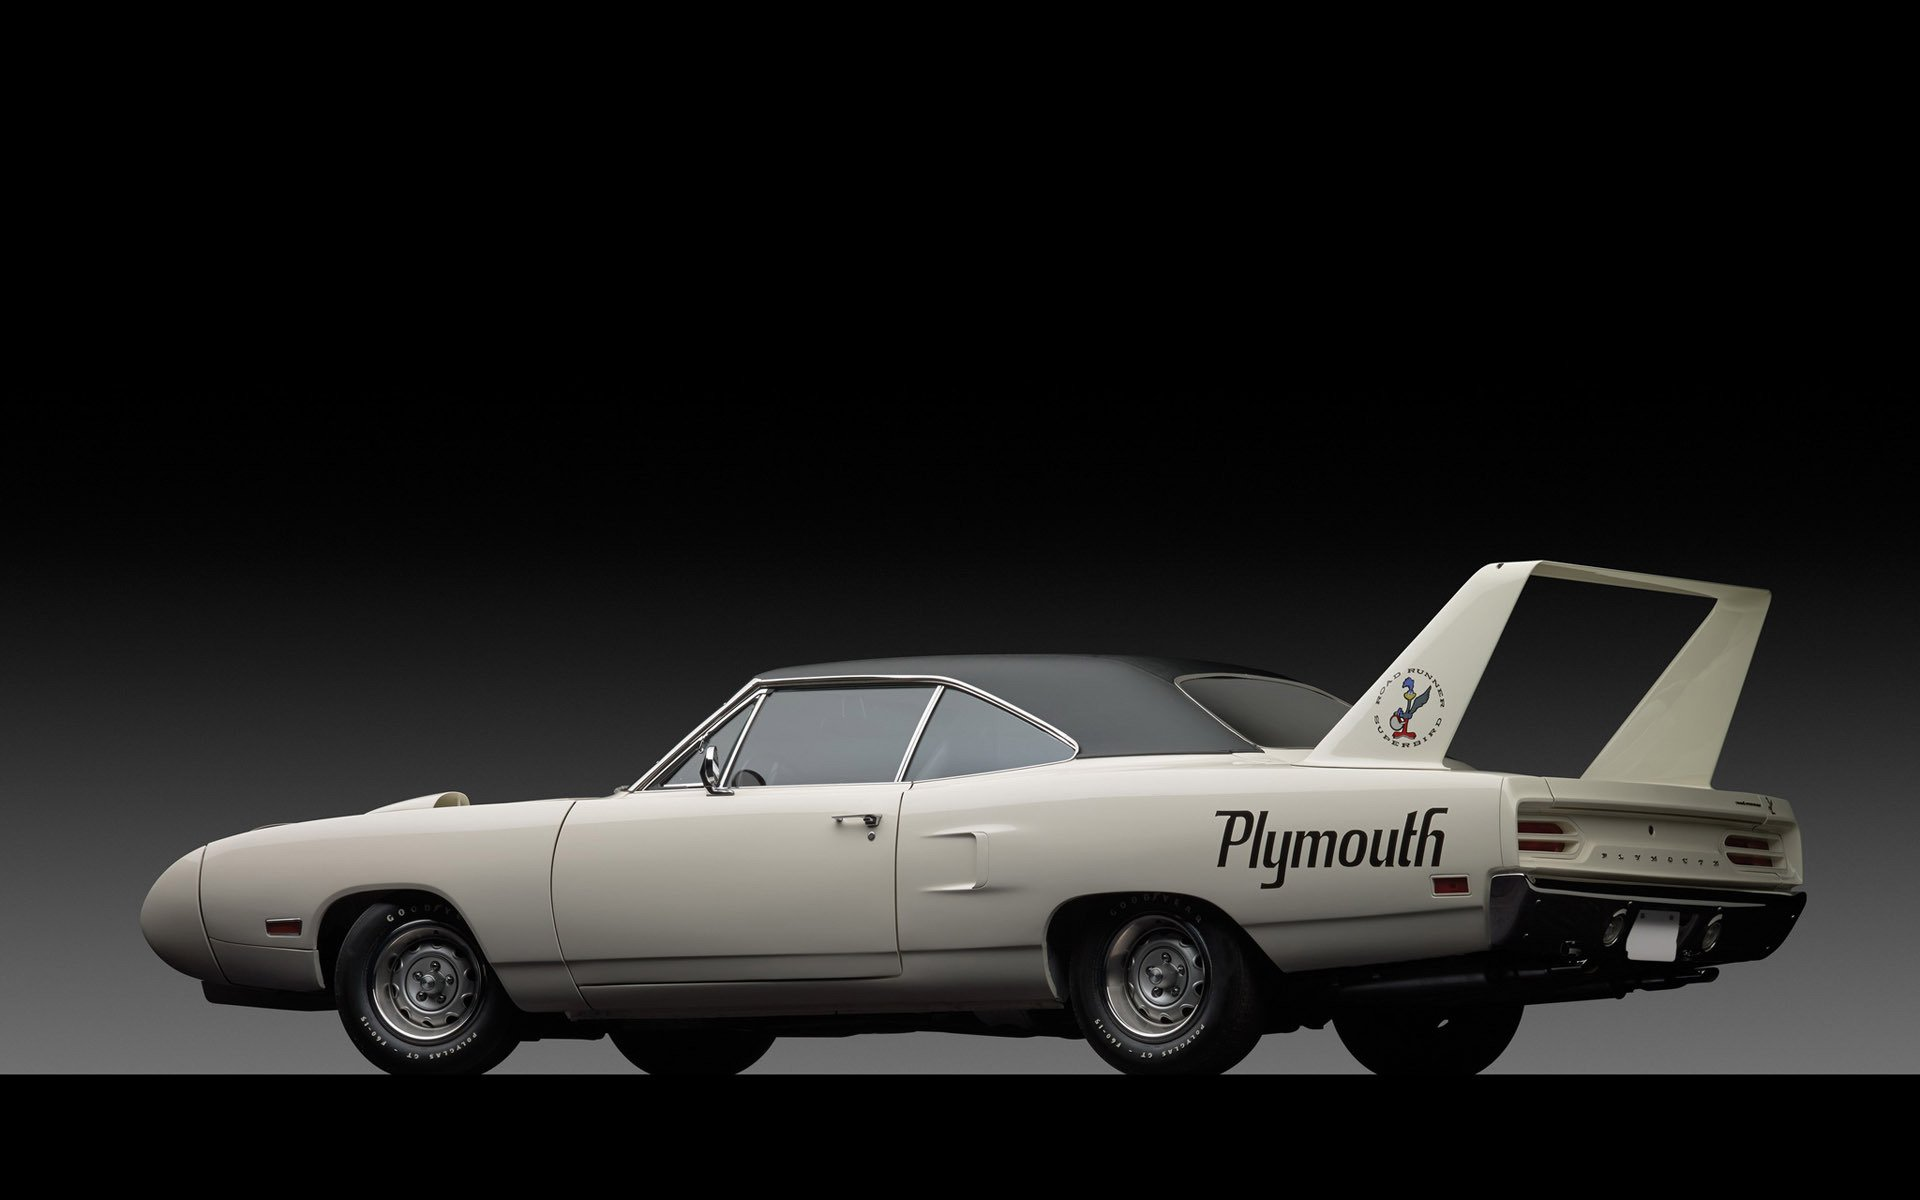 1920x1200 - Plymouth Road Runner Wallpapers 19